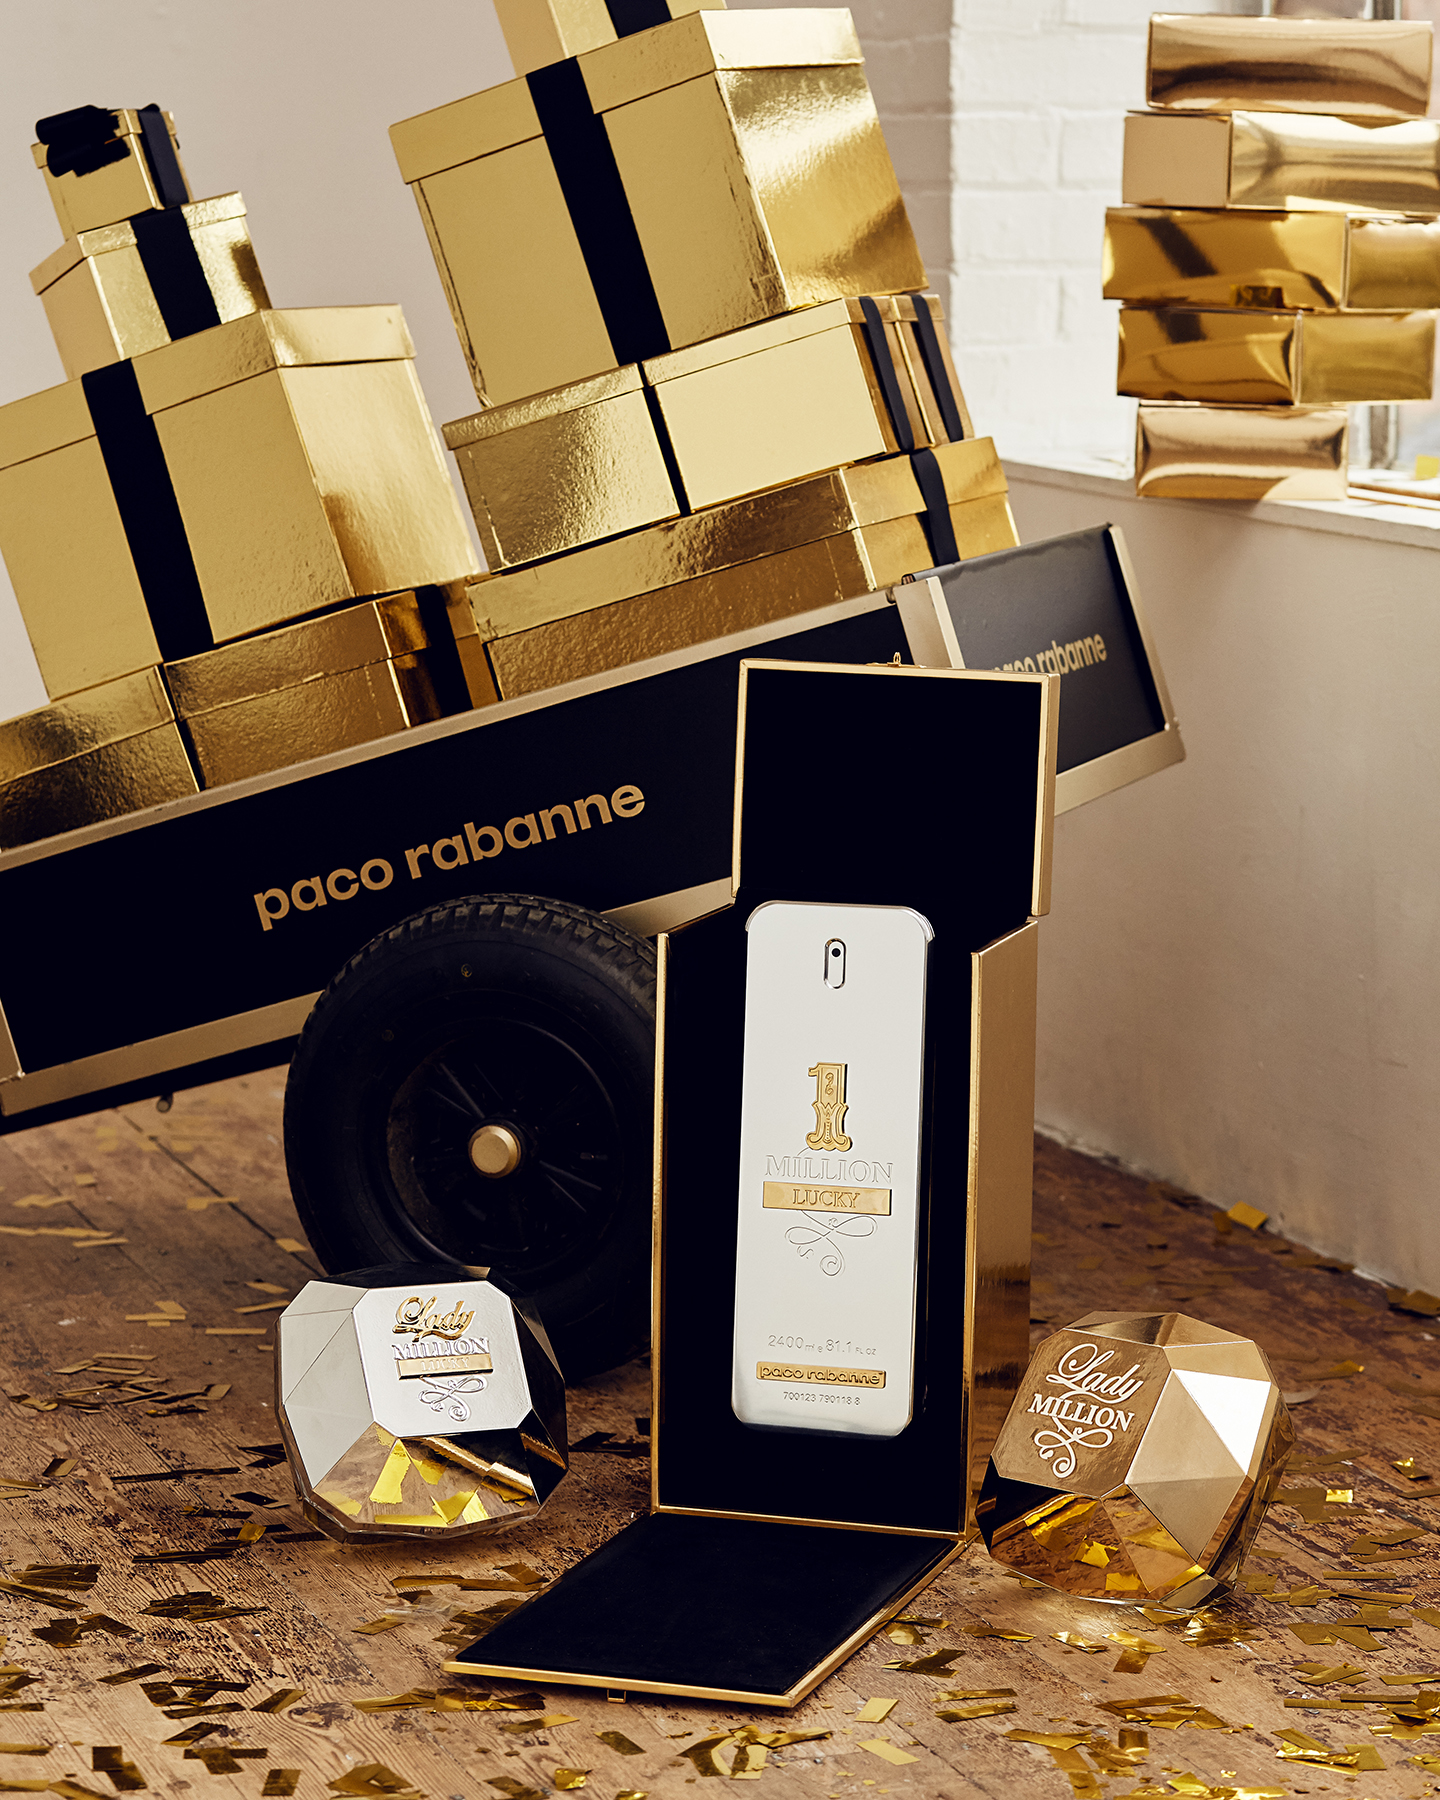 Paco Rabanne_Product Shot_181206_KG_PACORABANNE_SHOT_04_014_LR